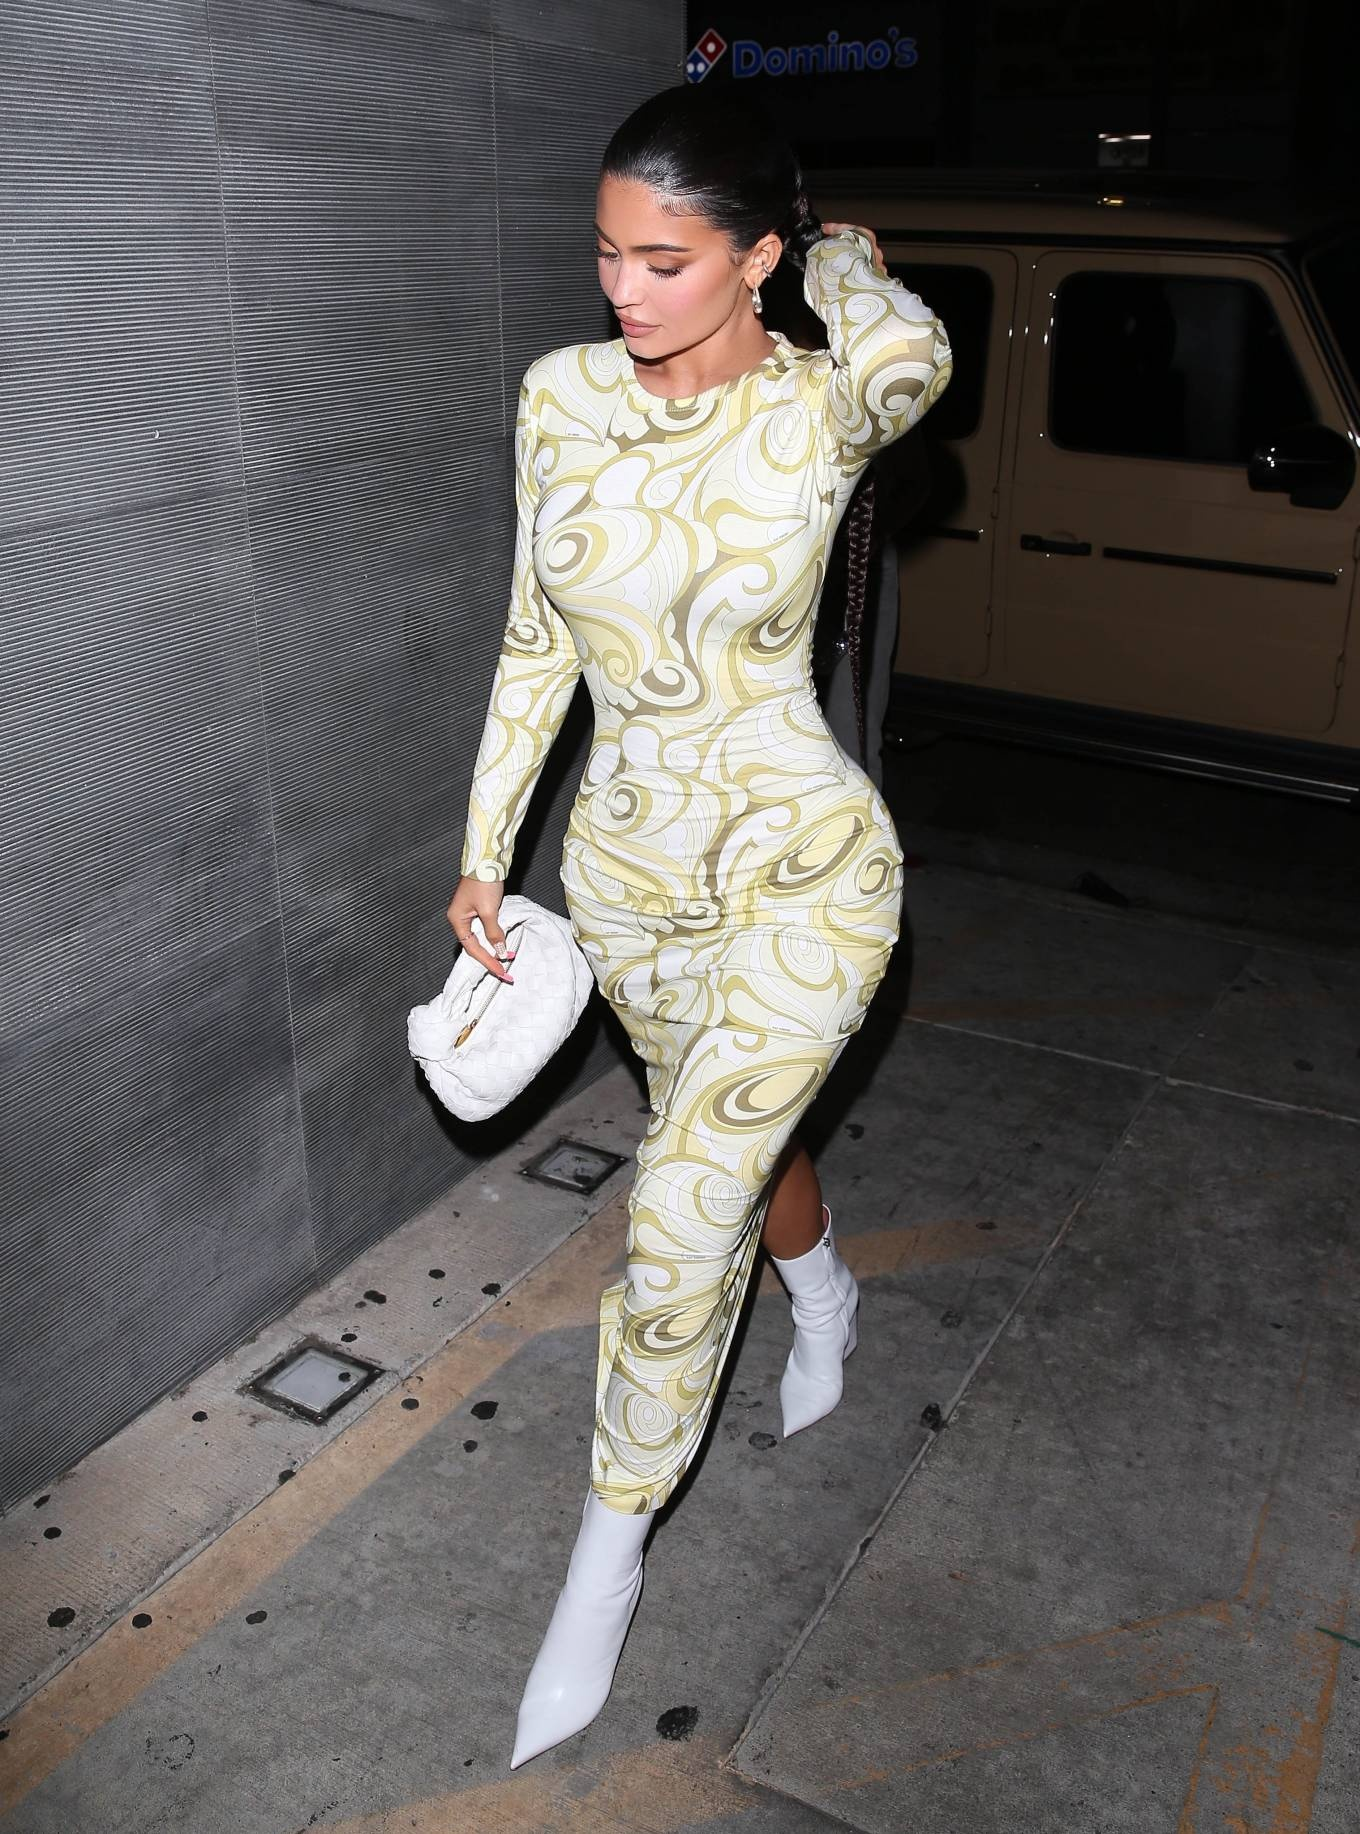 Kylie Jenner donning pointed white leather ankle boots by Amina Muaddi with platform heels